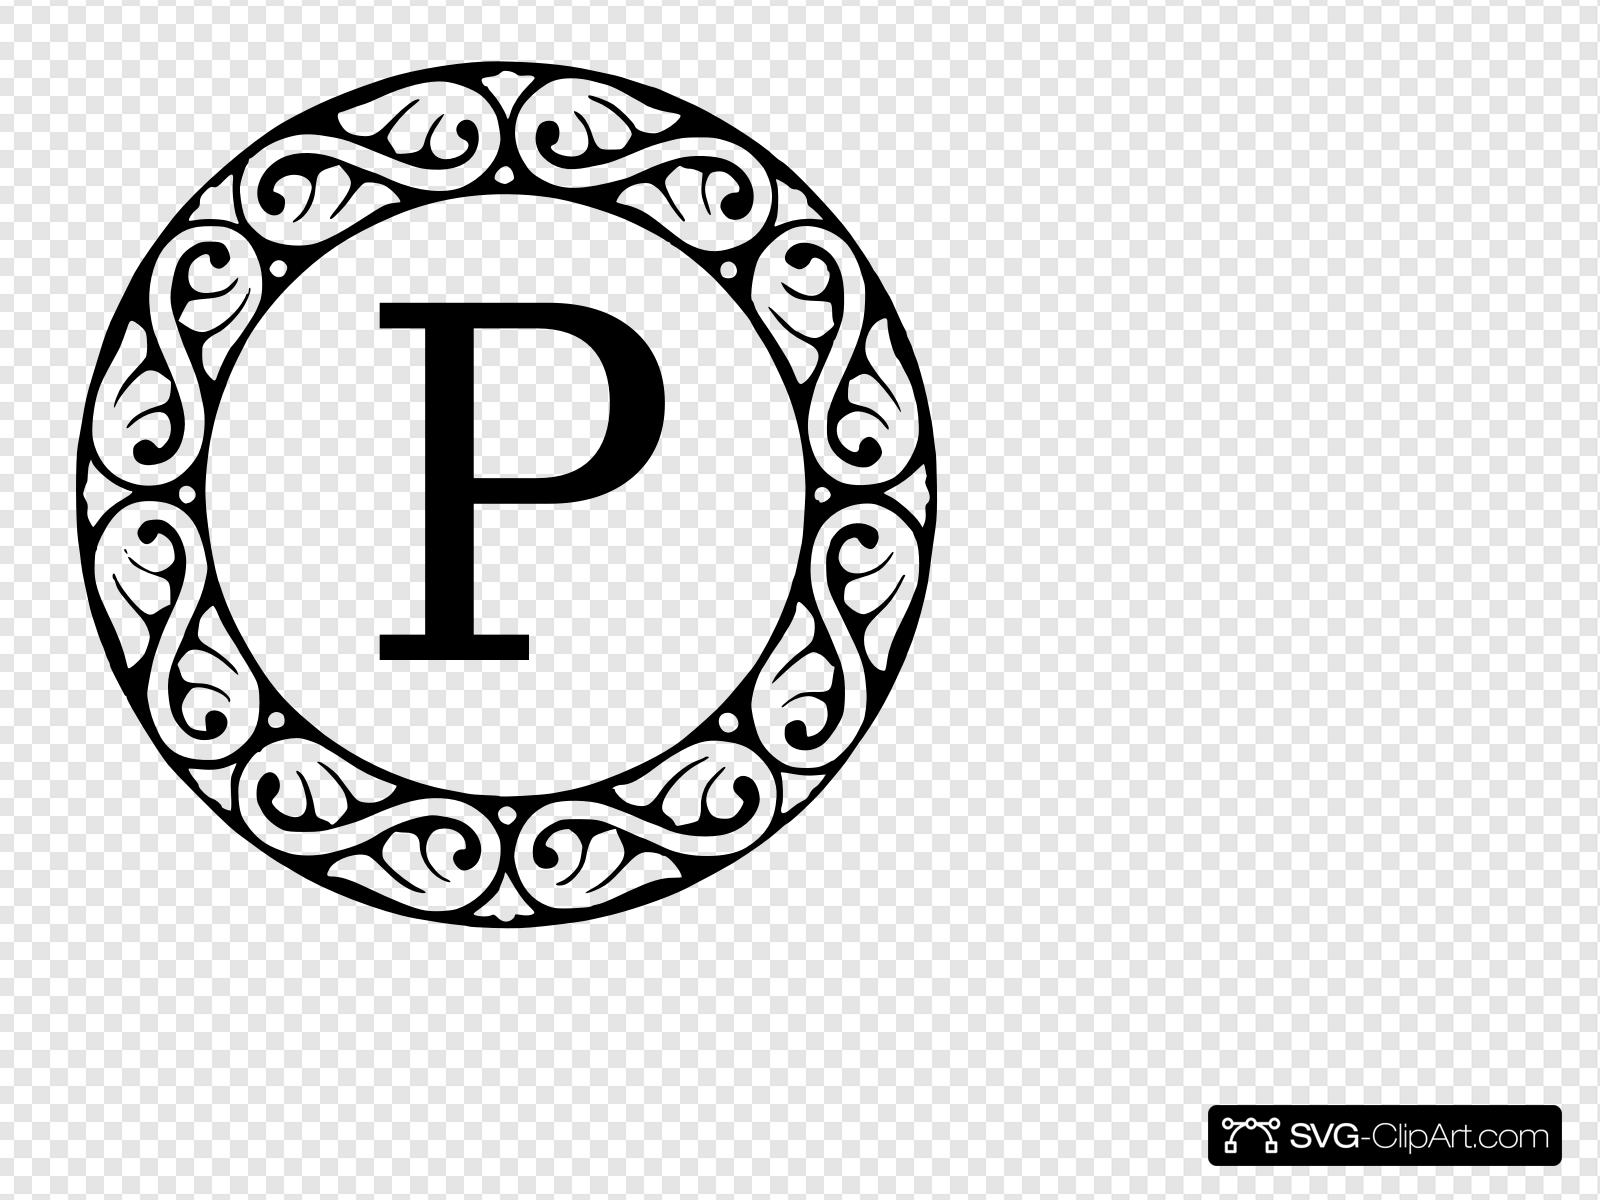 Monogram Letter P Clip art, Icon and SVG.